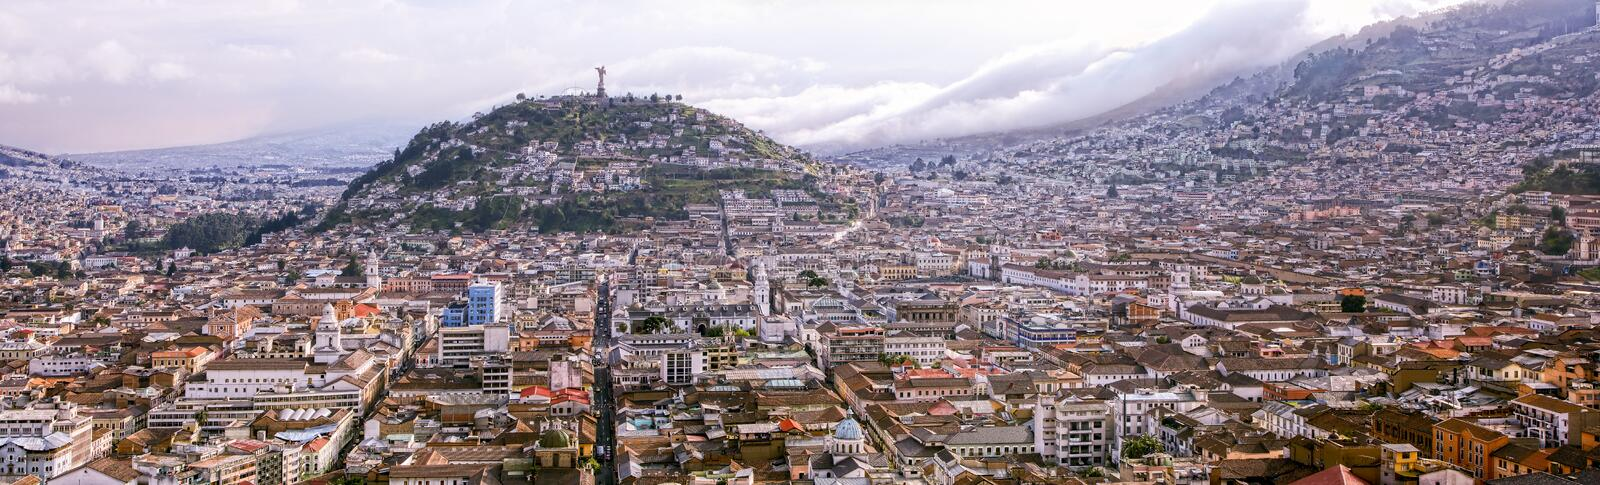 Quito Panorama With Panecillo Statue royalty free stock images